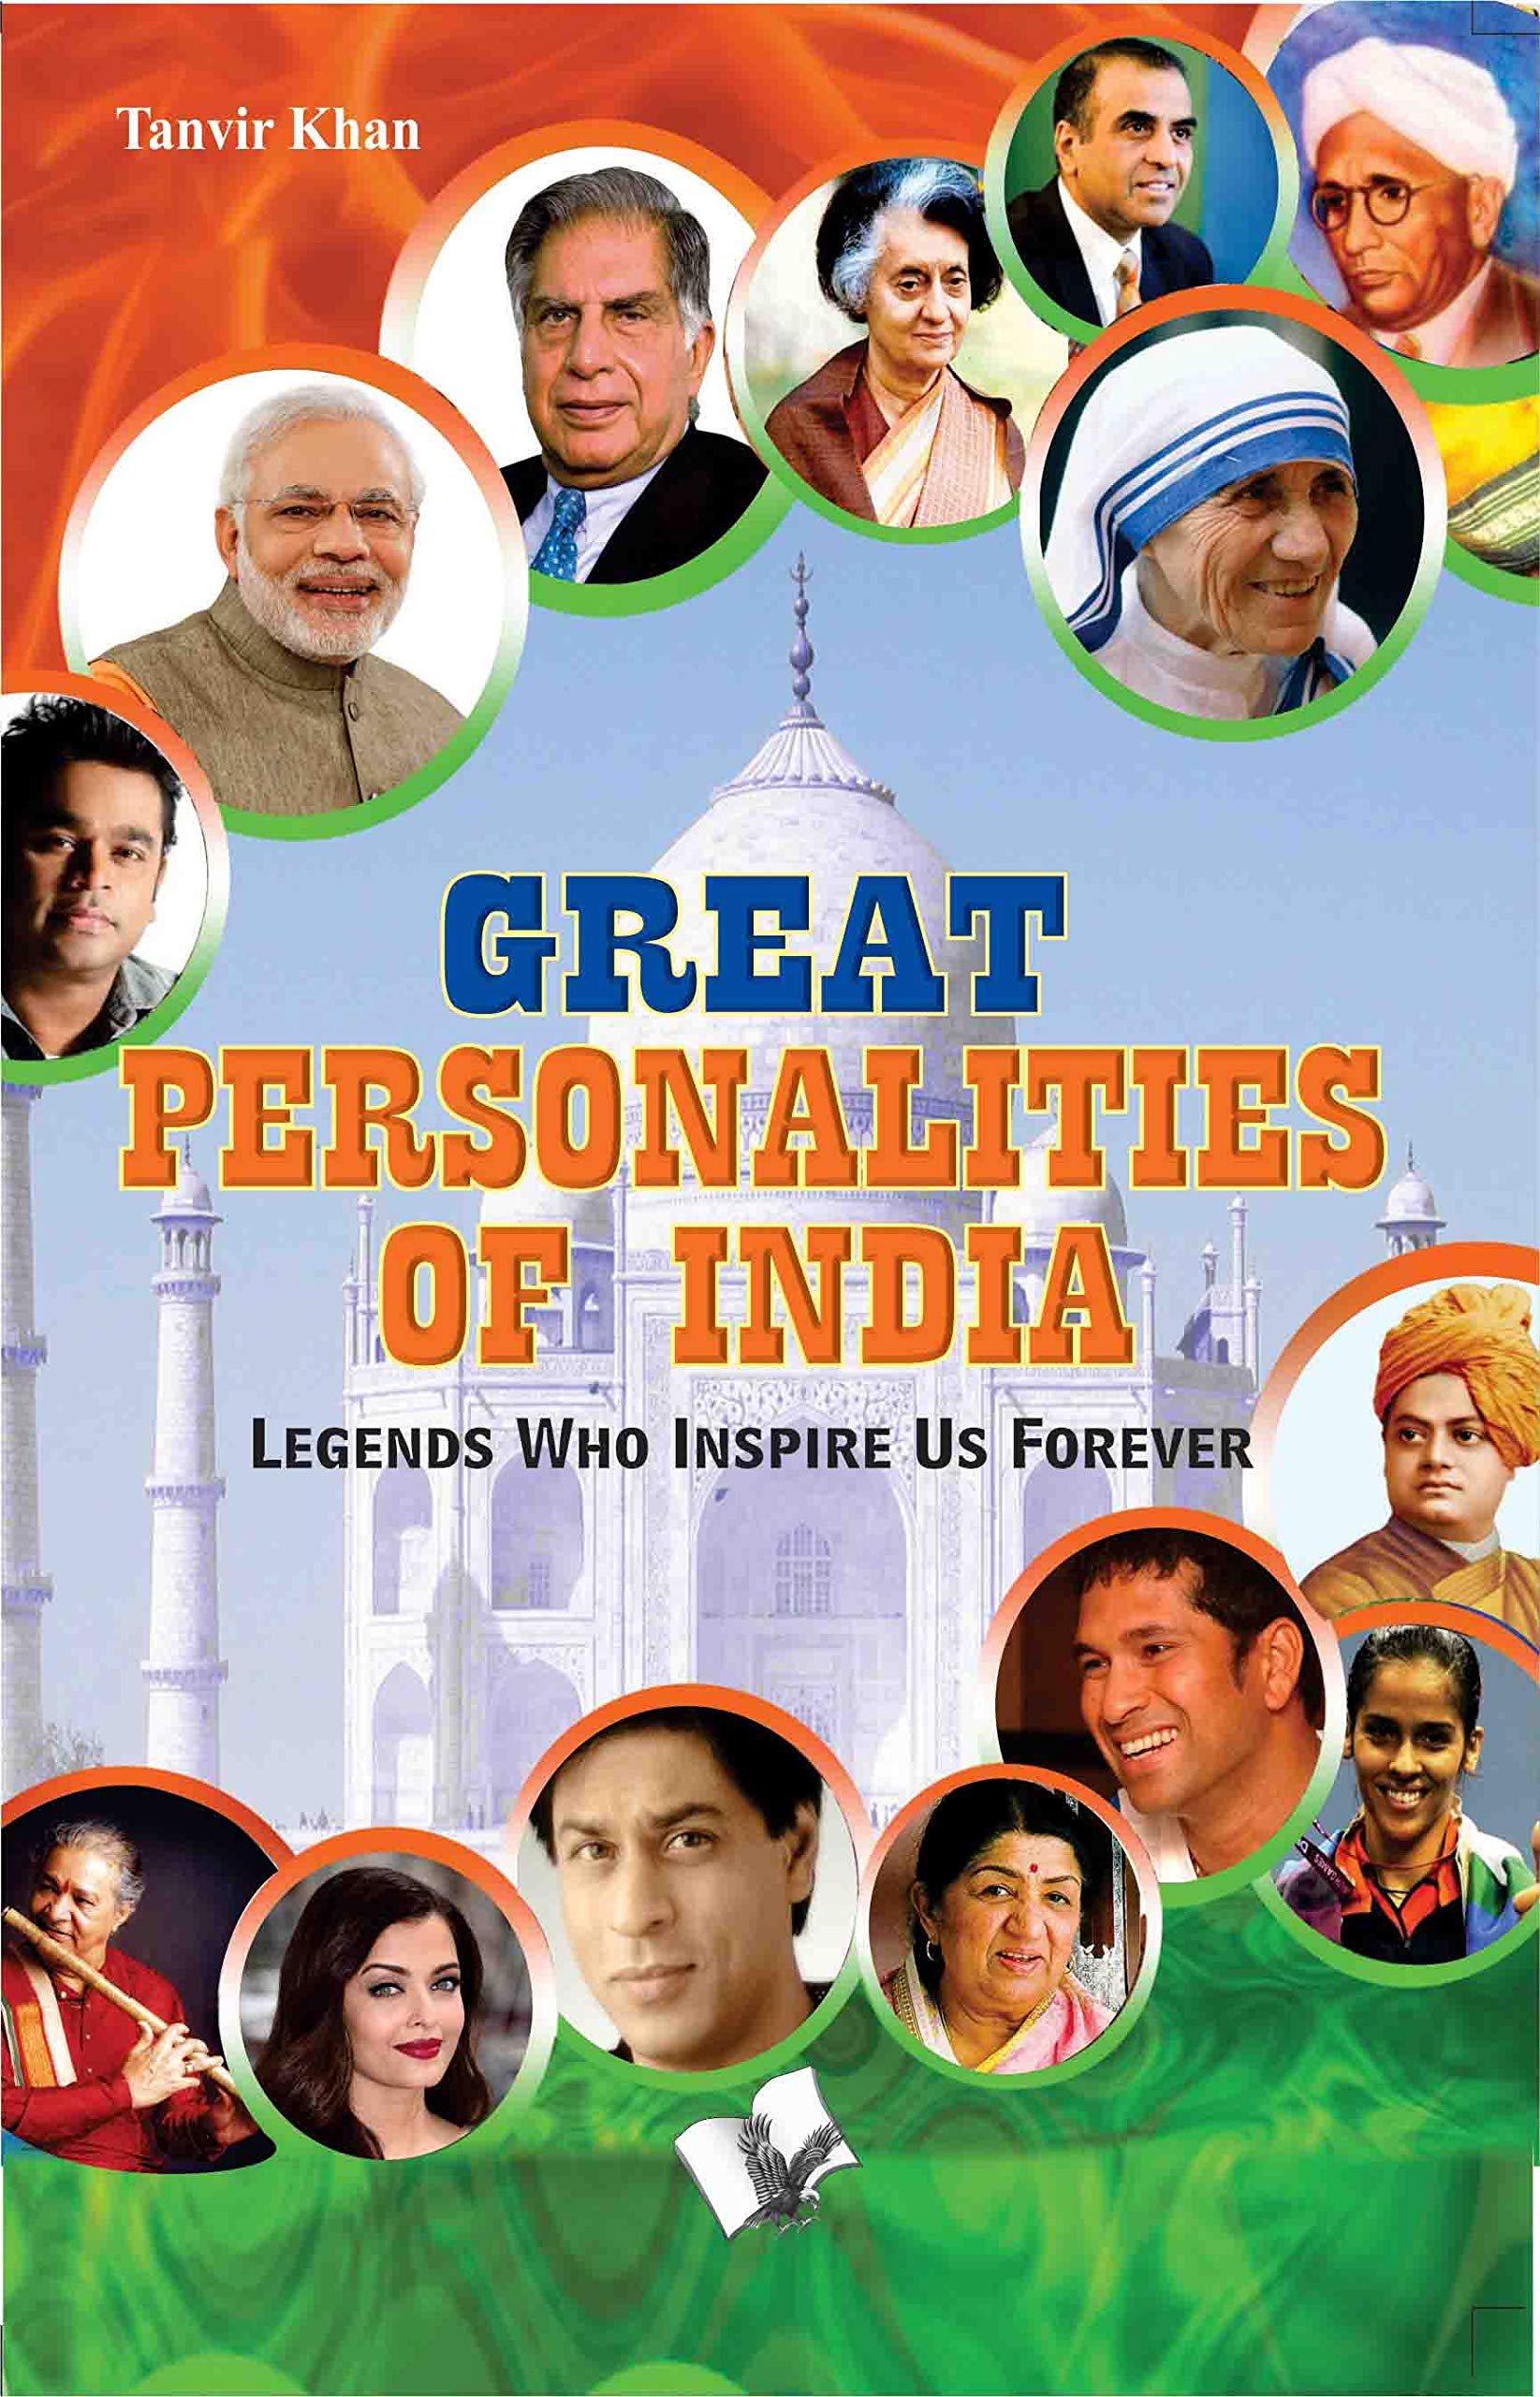 GREAT PERSONALATIES OF INDIA: LEGENDS WHO INSPIRE US FOREVER